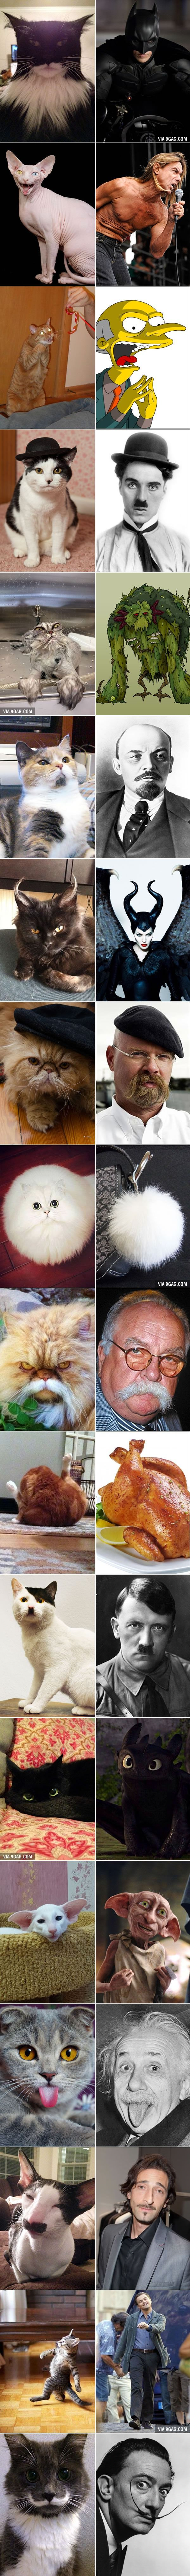 18 Cats That Look Like Something Else